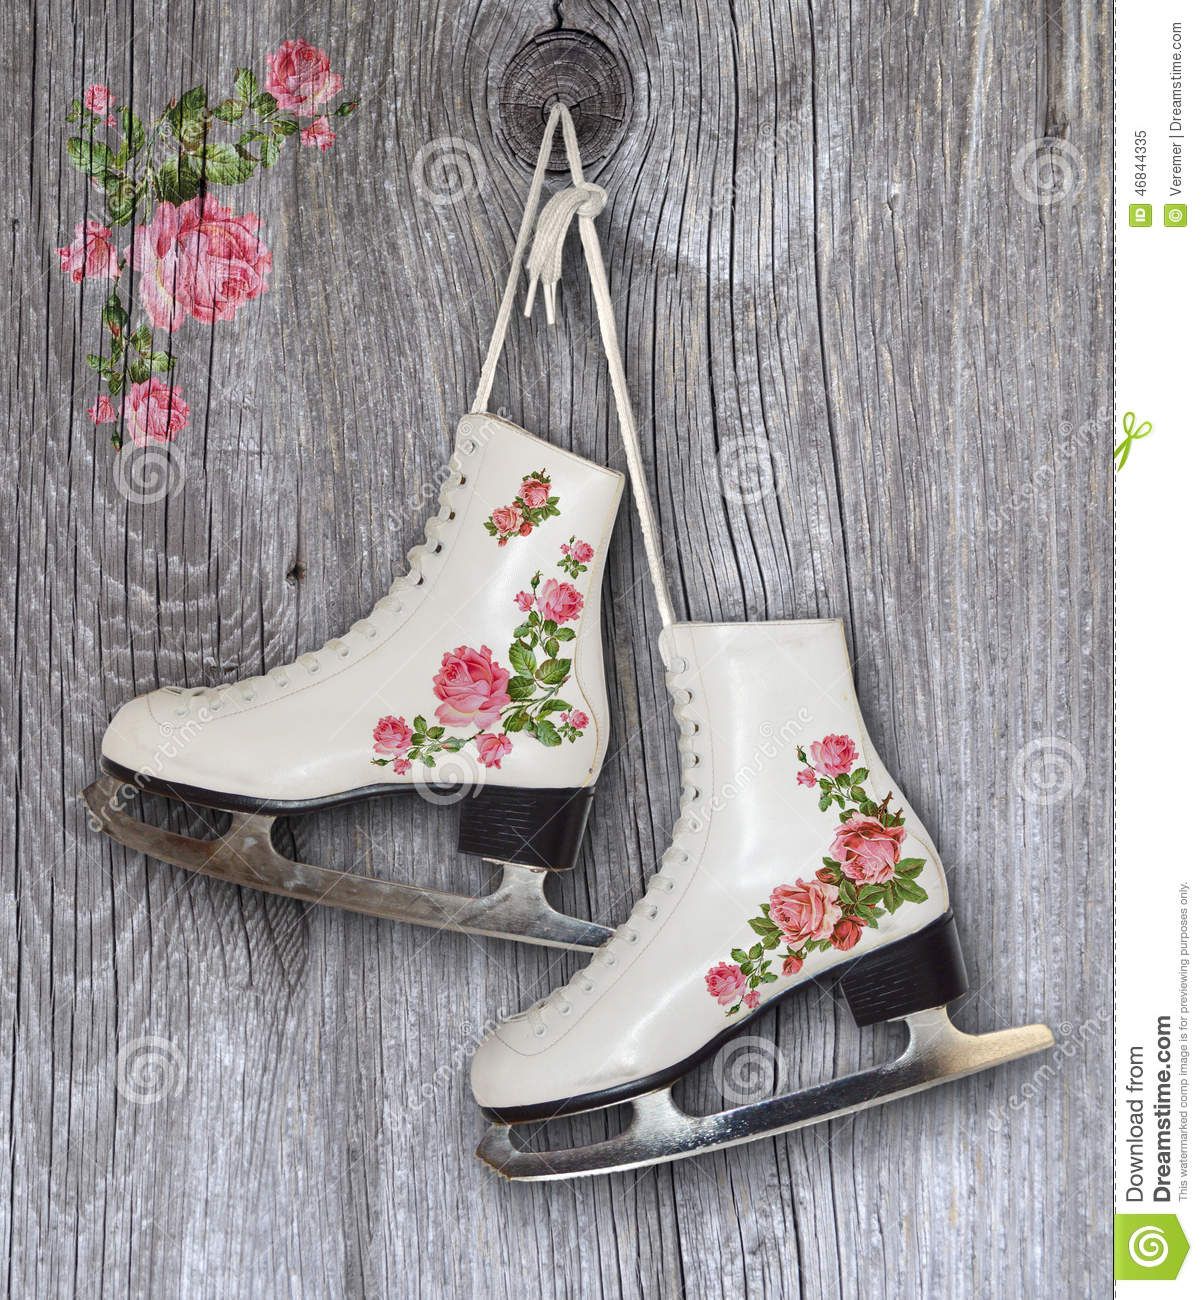 Paires de patins de glace blancs avec la d coration de roses de vintage fond image stock for Decoration glace